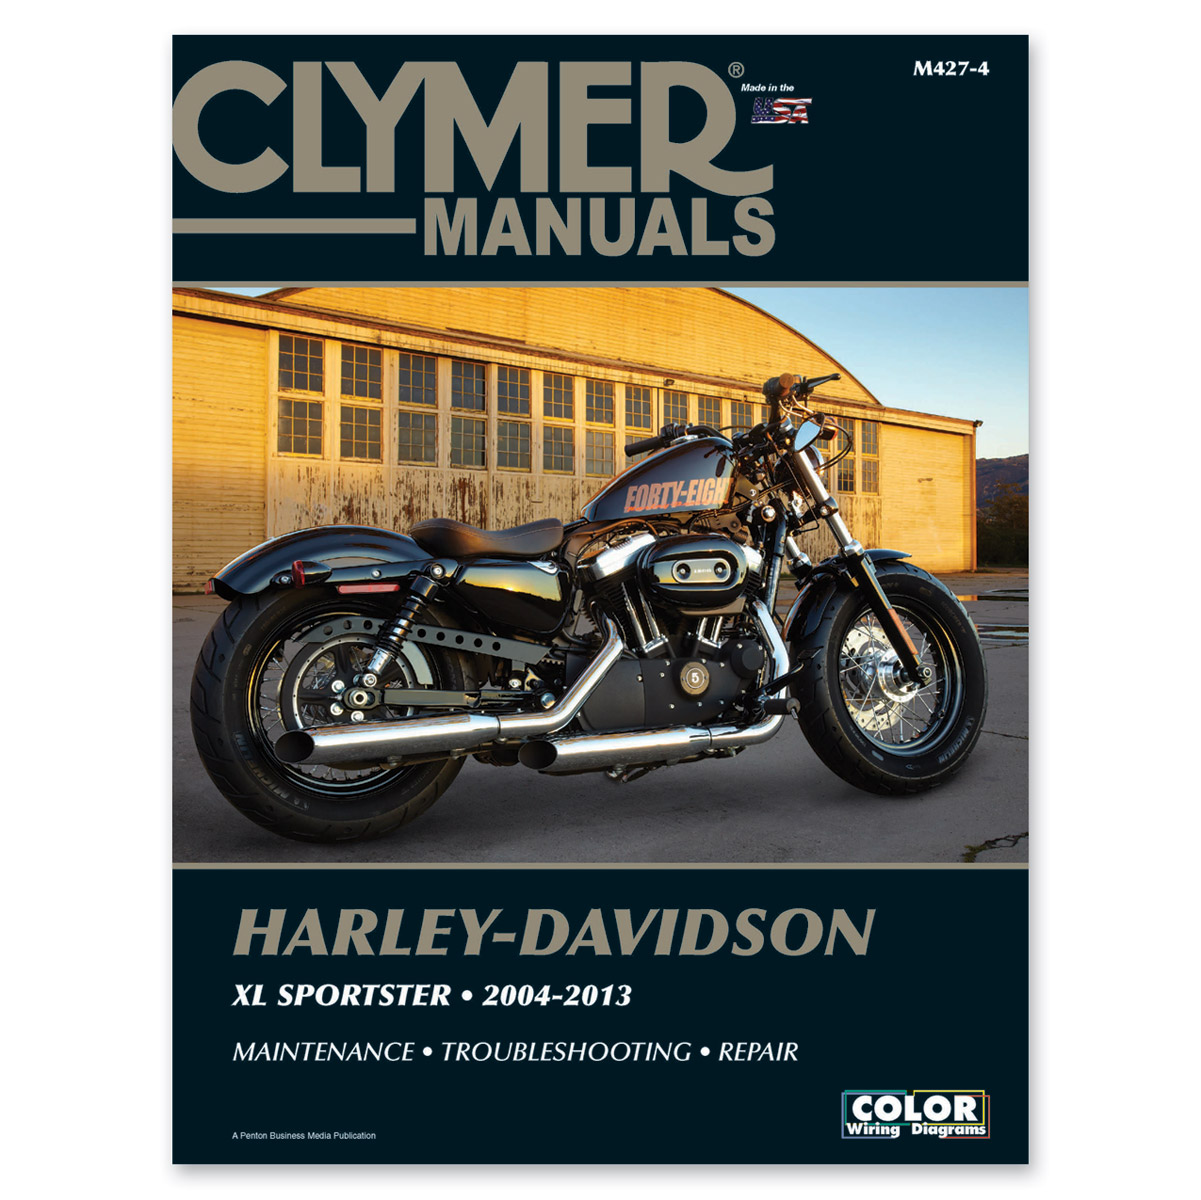 clymer sportster repair manual 446 613 j p cycles rh jpcycles com Harley Sportster Owner's Manual 2007 harley davidson sportster 1200 owners manual pdf